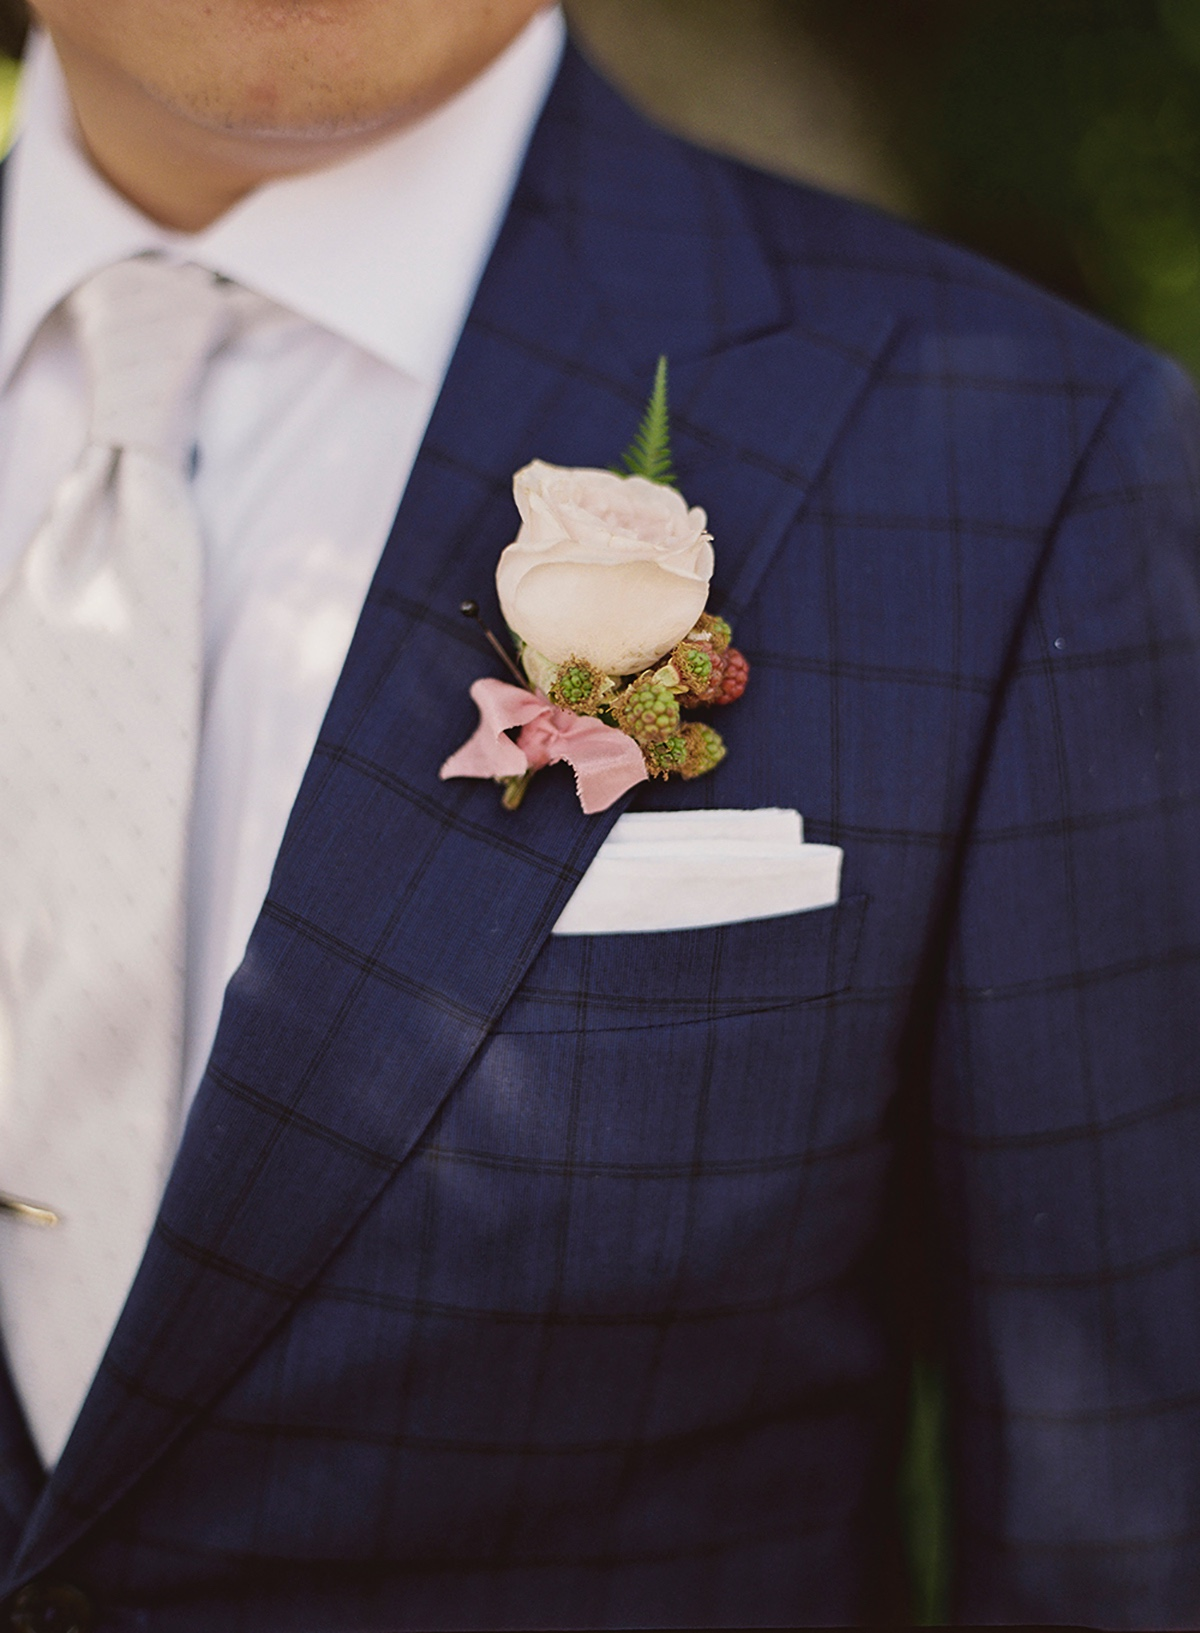 Checkered suit and boutonniere